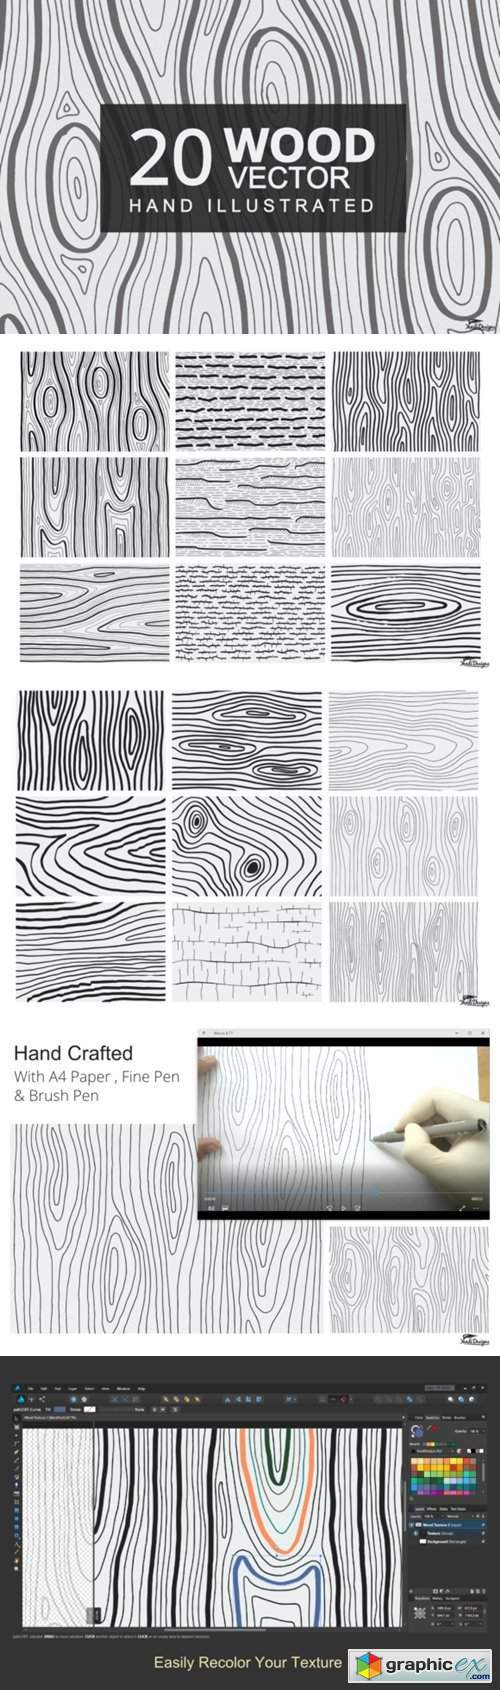 Hand Illustrated Wood Texture Vector